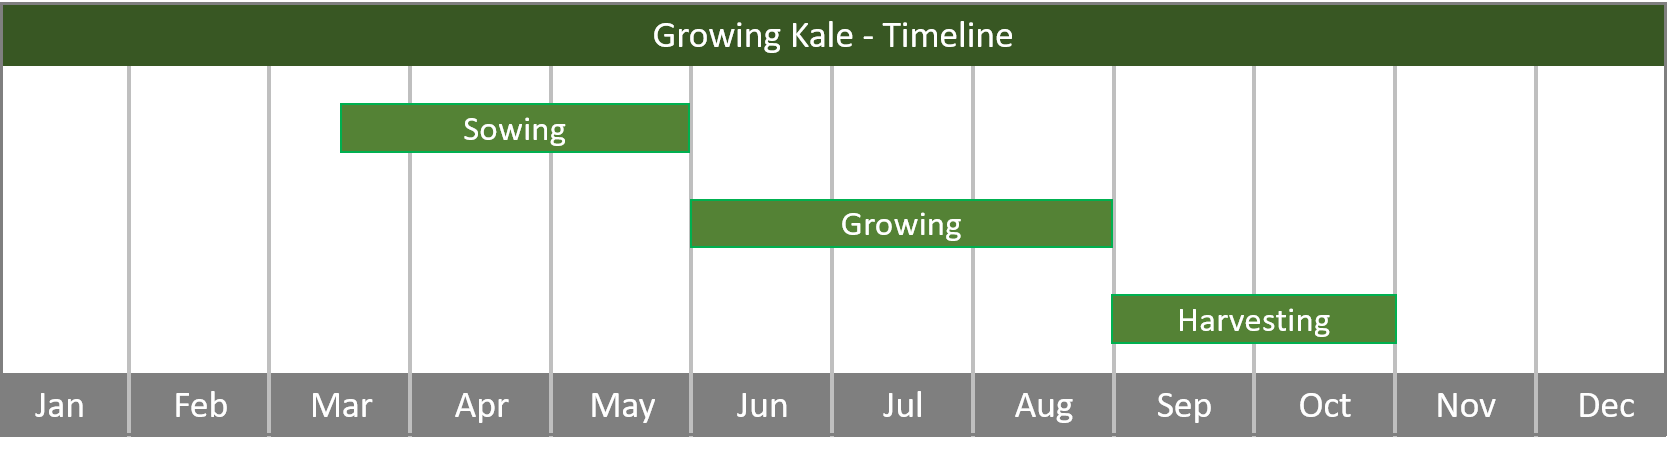 how to grow kale from seed to harvest at home timeline